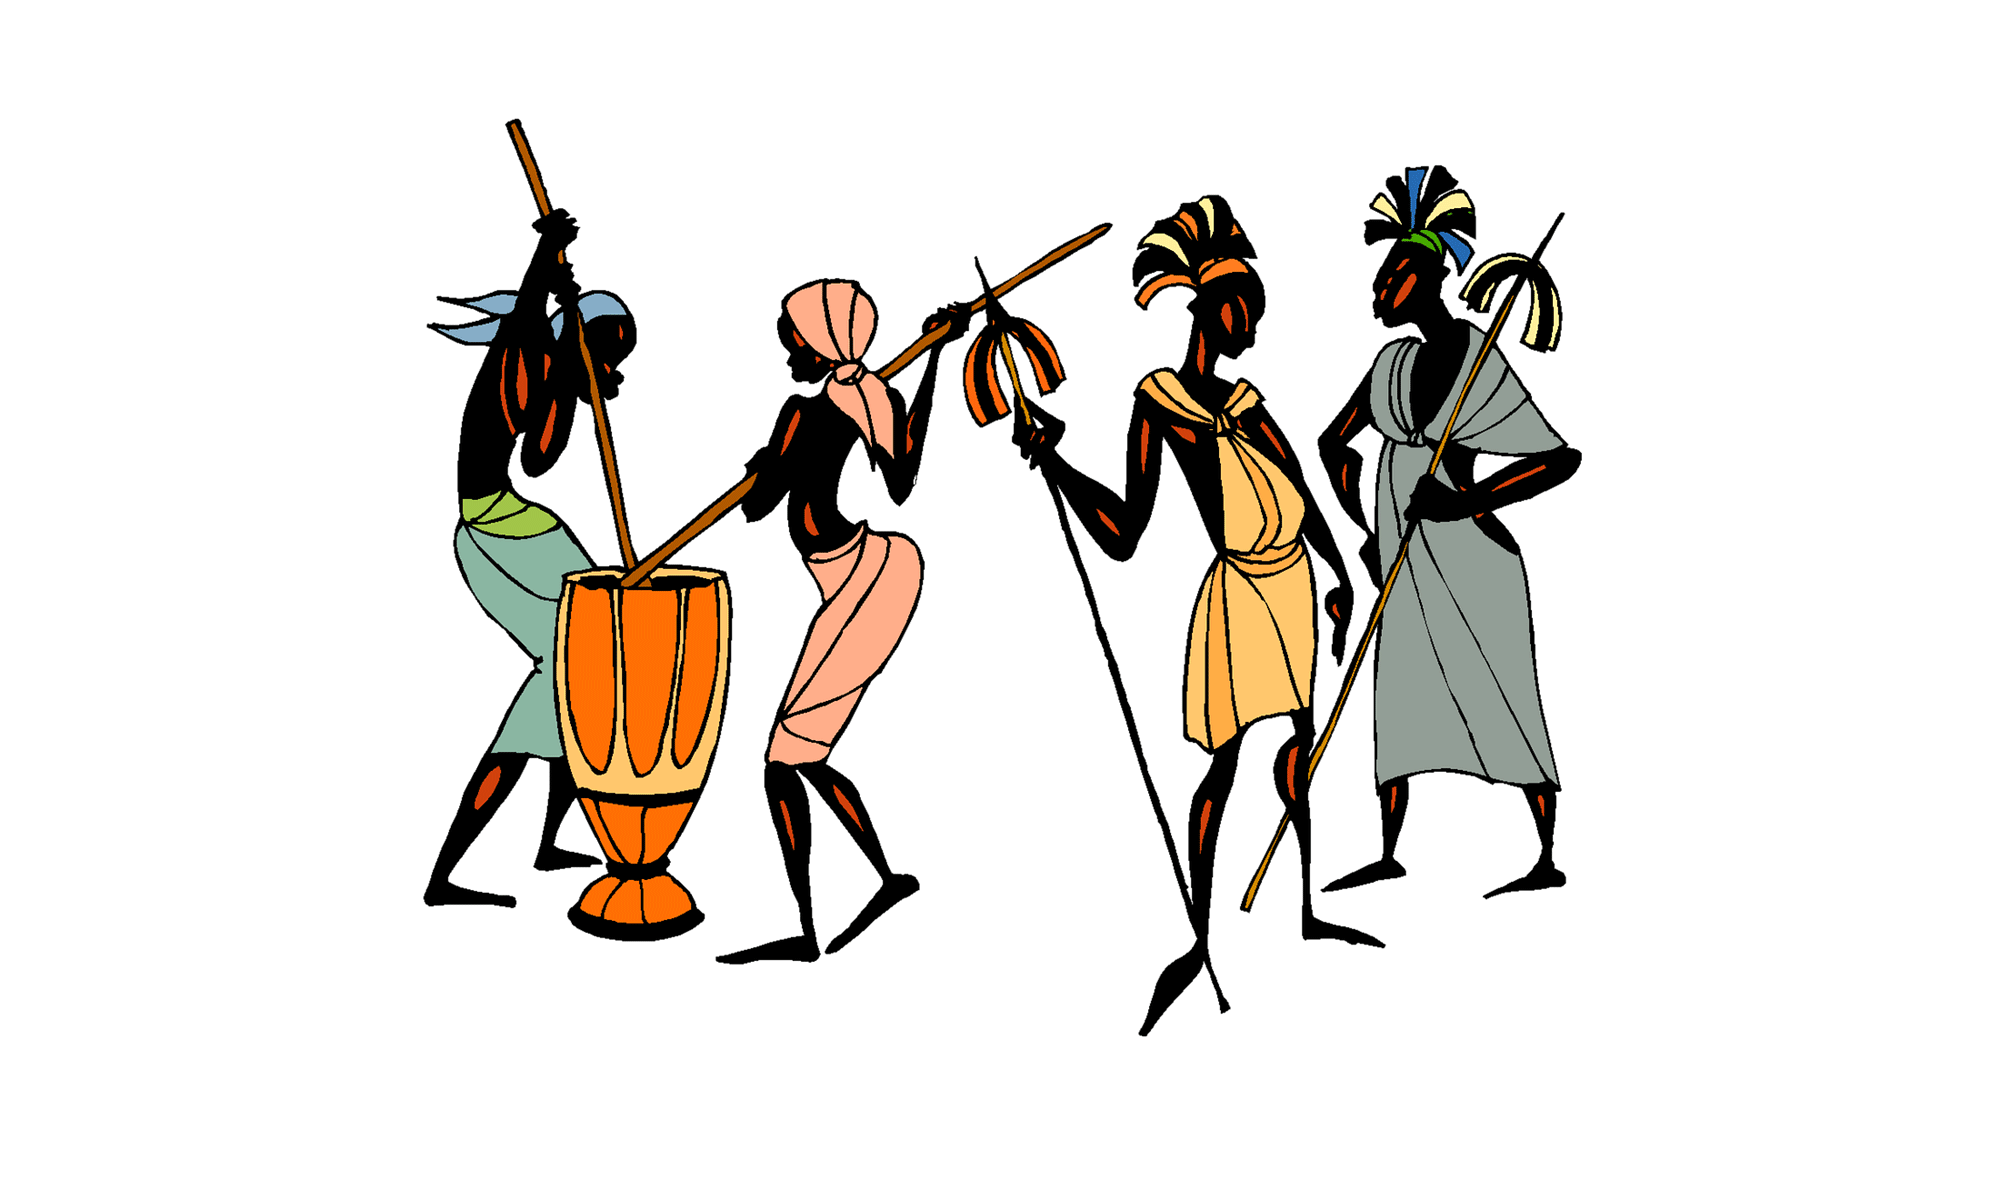 About d a y. Flute clipart native american flute